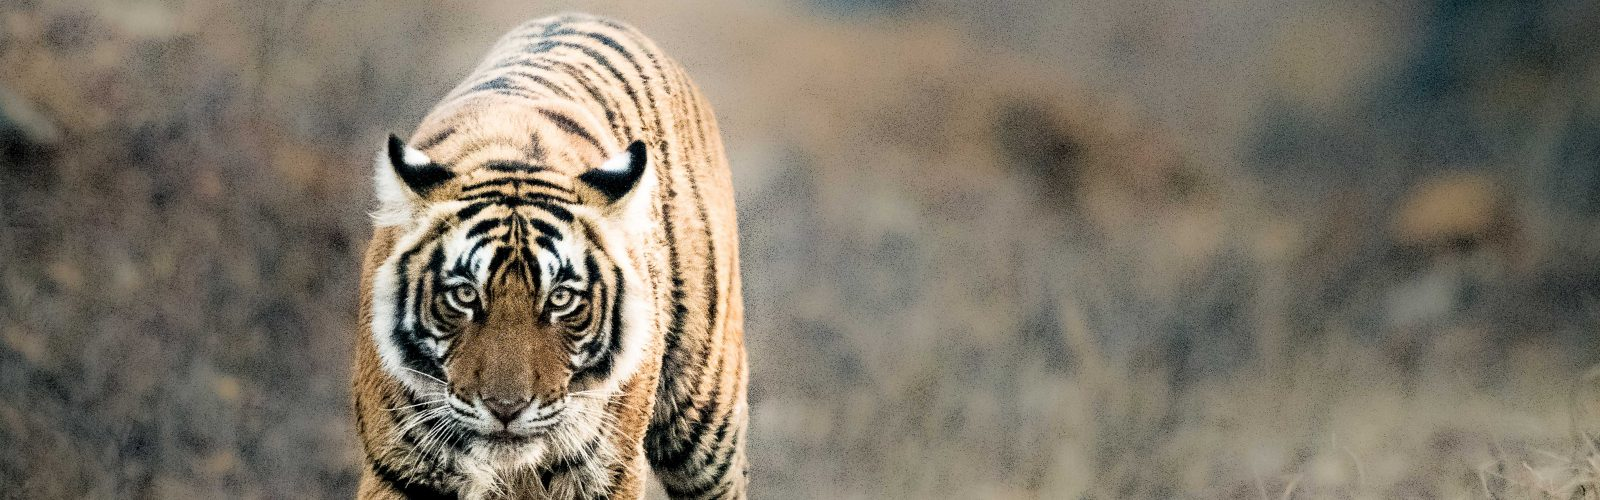 tiger walking photographed by behzad larry